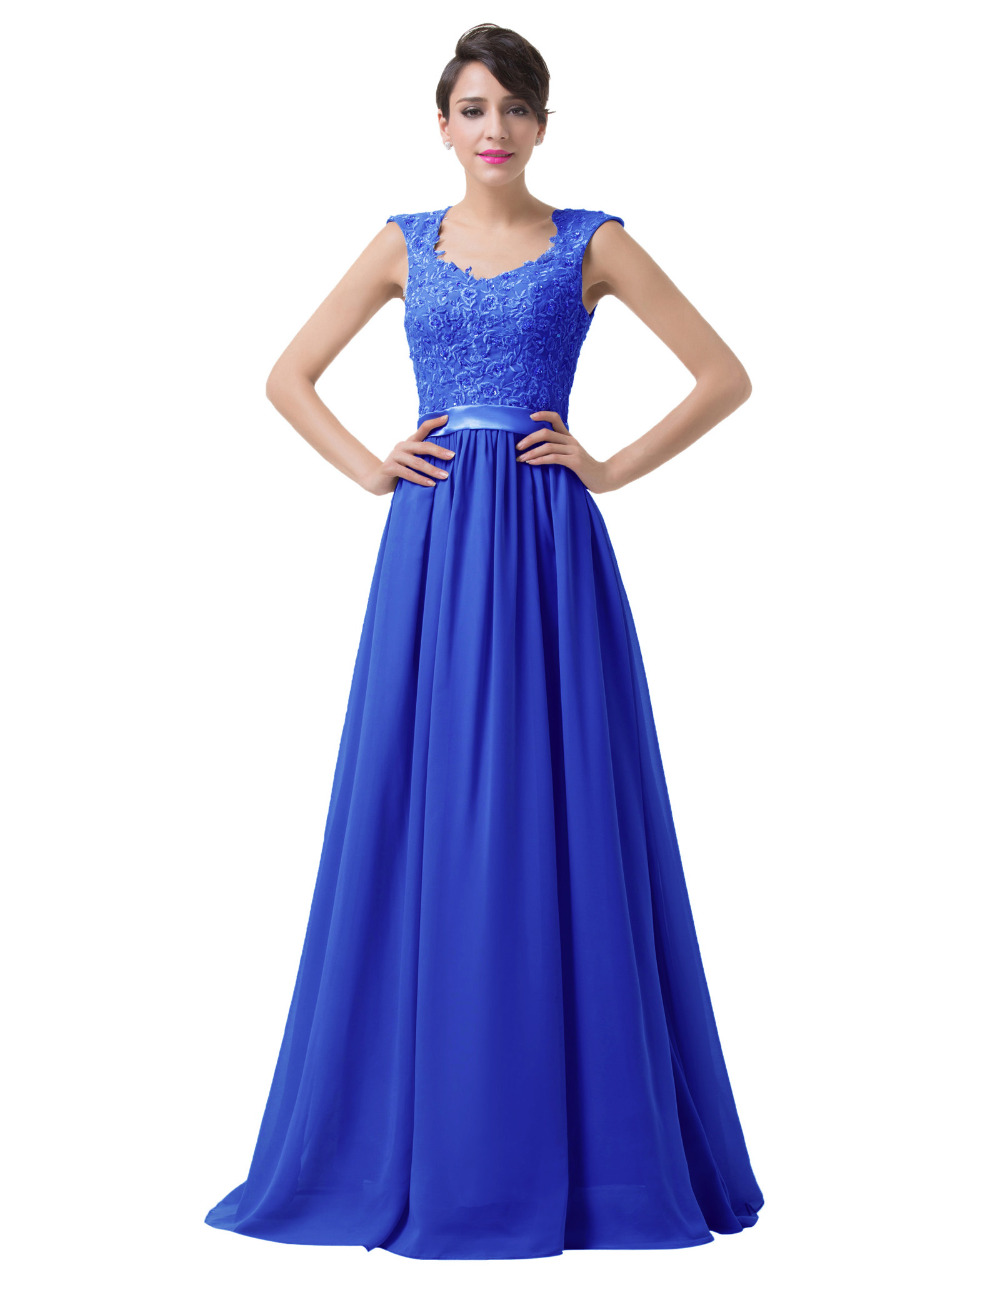 Sears wedding dresses plus size image collections dresses design sears mother of the bride dresses sears bridesmaid dresses canada evening dresses 2016 sexy backless blue ombrellifo Choice Image